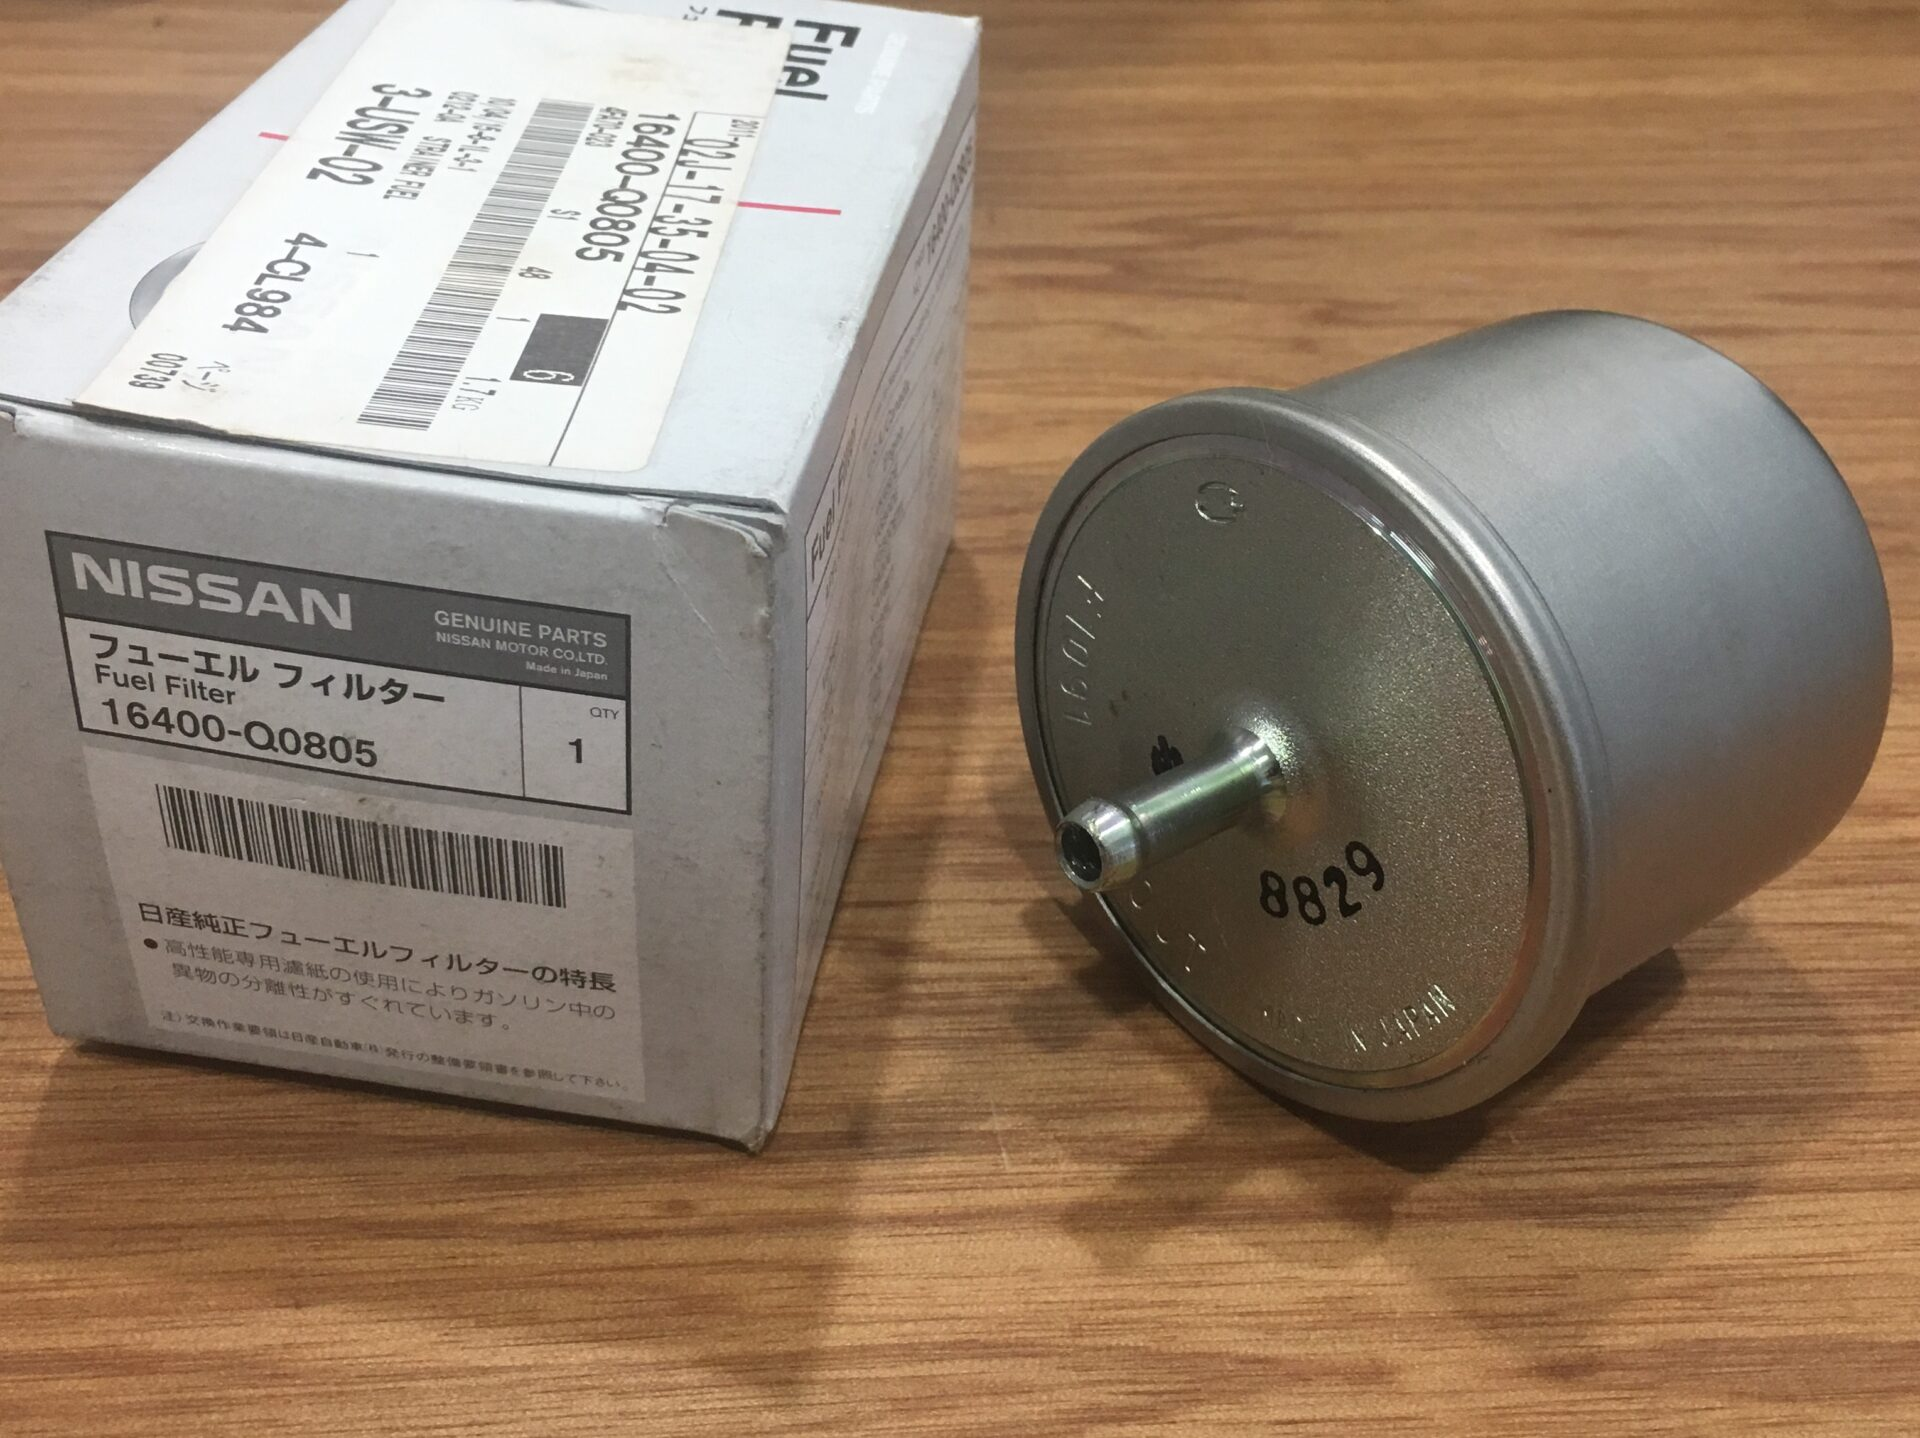 ... Nissan OEM Fuel Filter for Z32 300zx FREE DELIVERY. $35.00 inc.